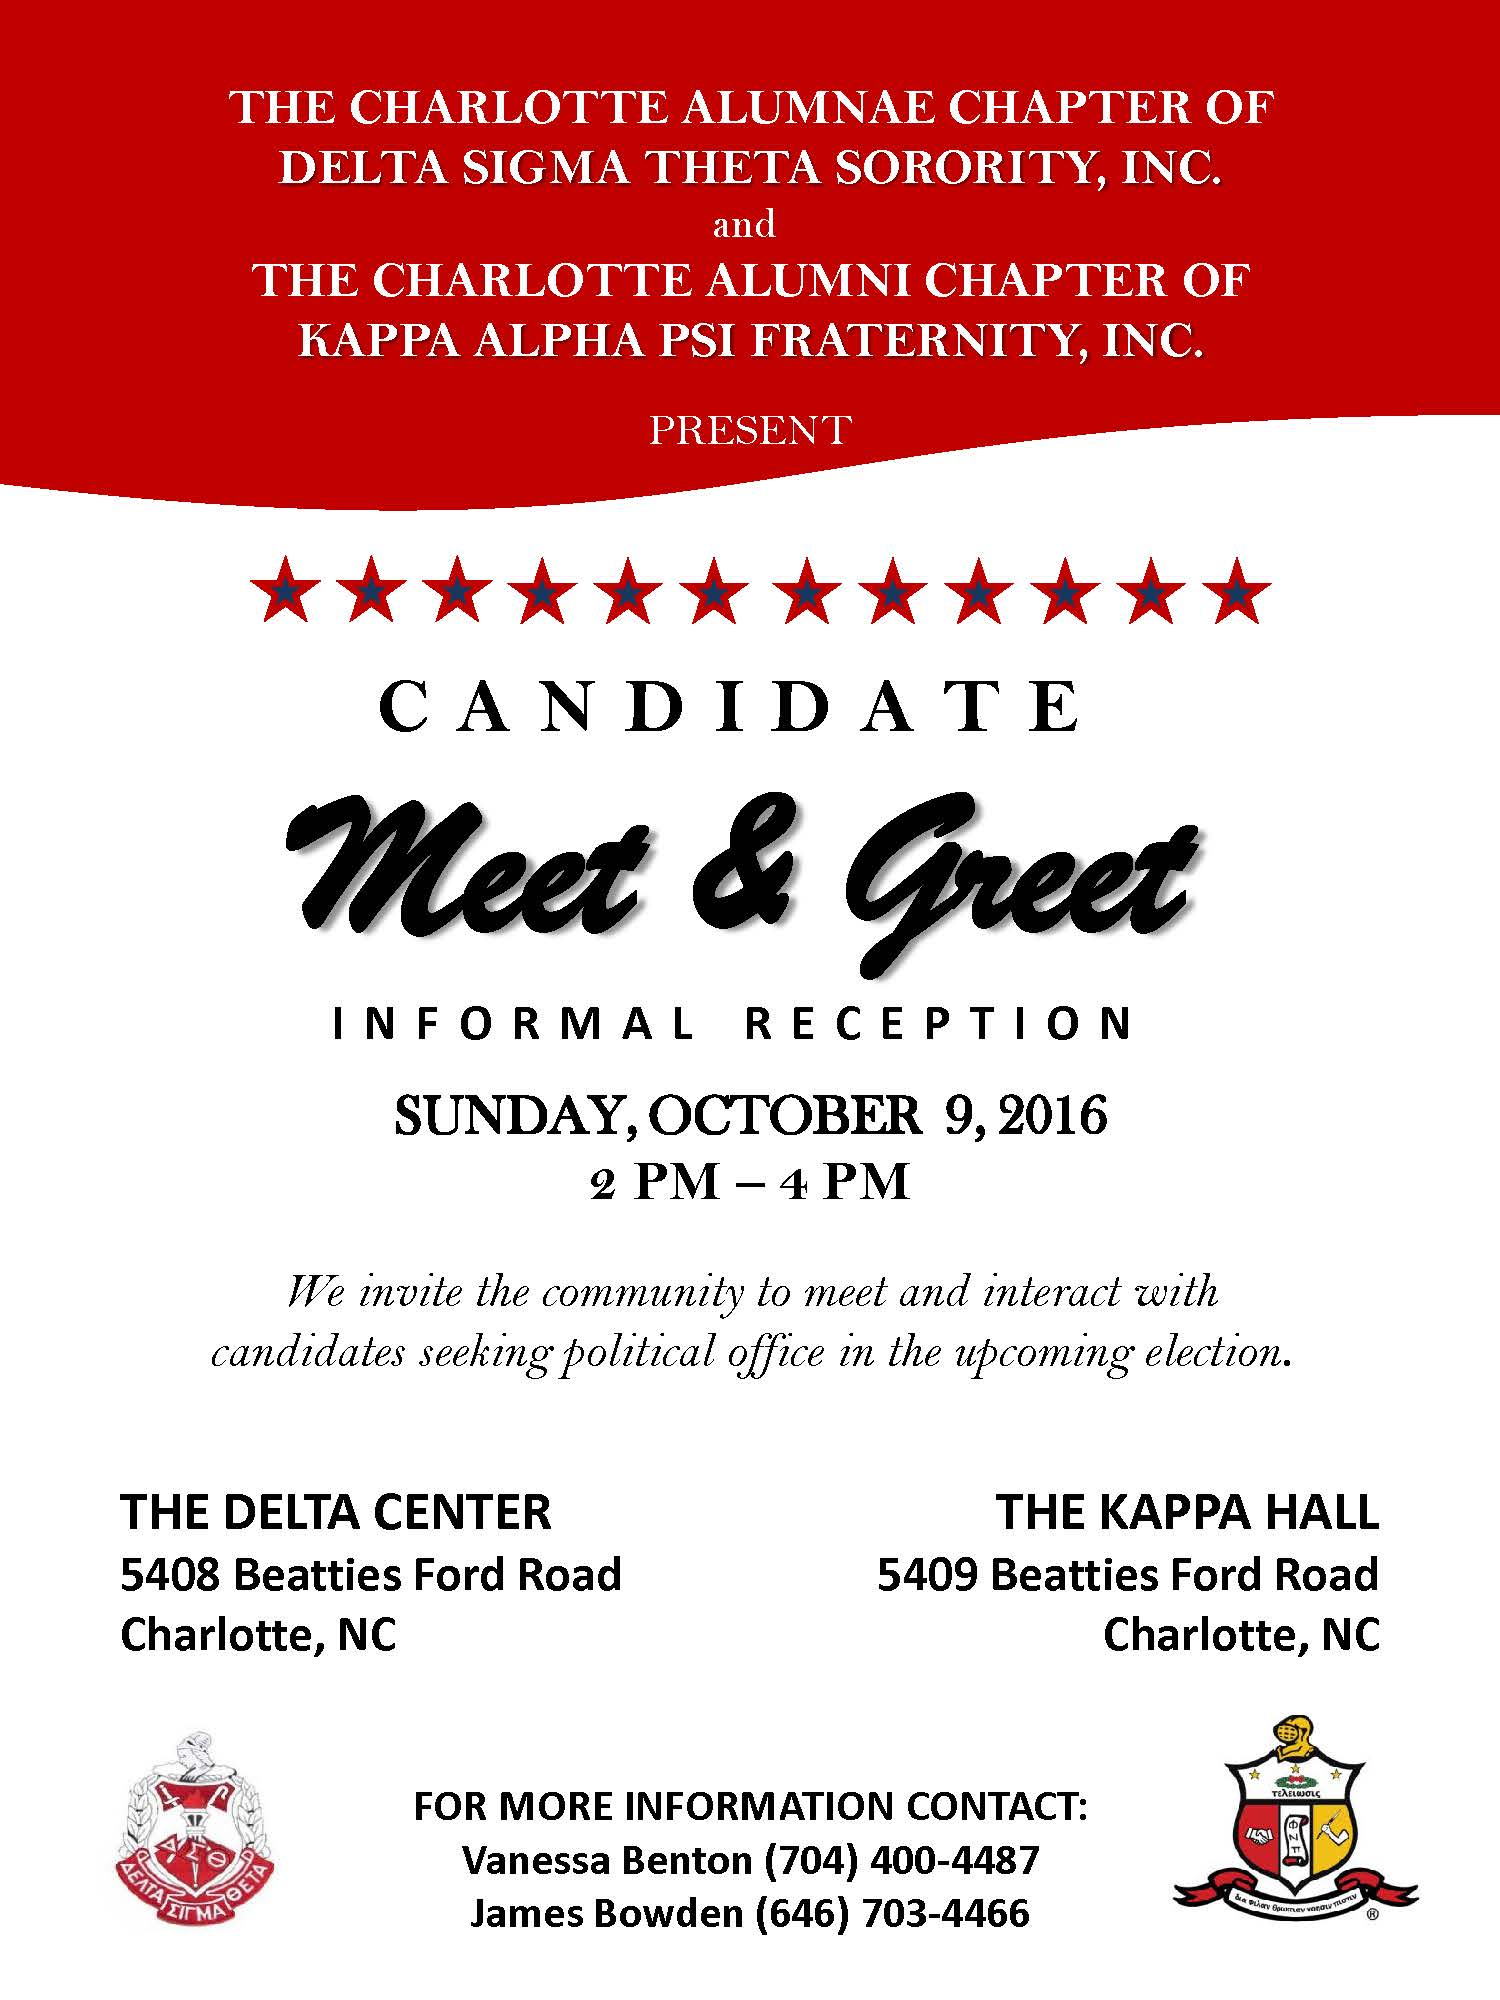 Candidate meet and greet q city metro the community is invited to a candidate meet and greet reception hosted by the charlotte alumnae chapter of delta sigma theta sorority m4hsunfo